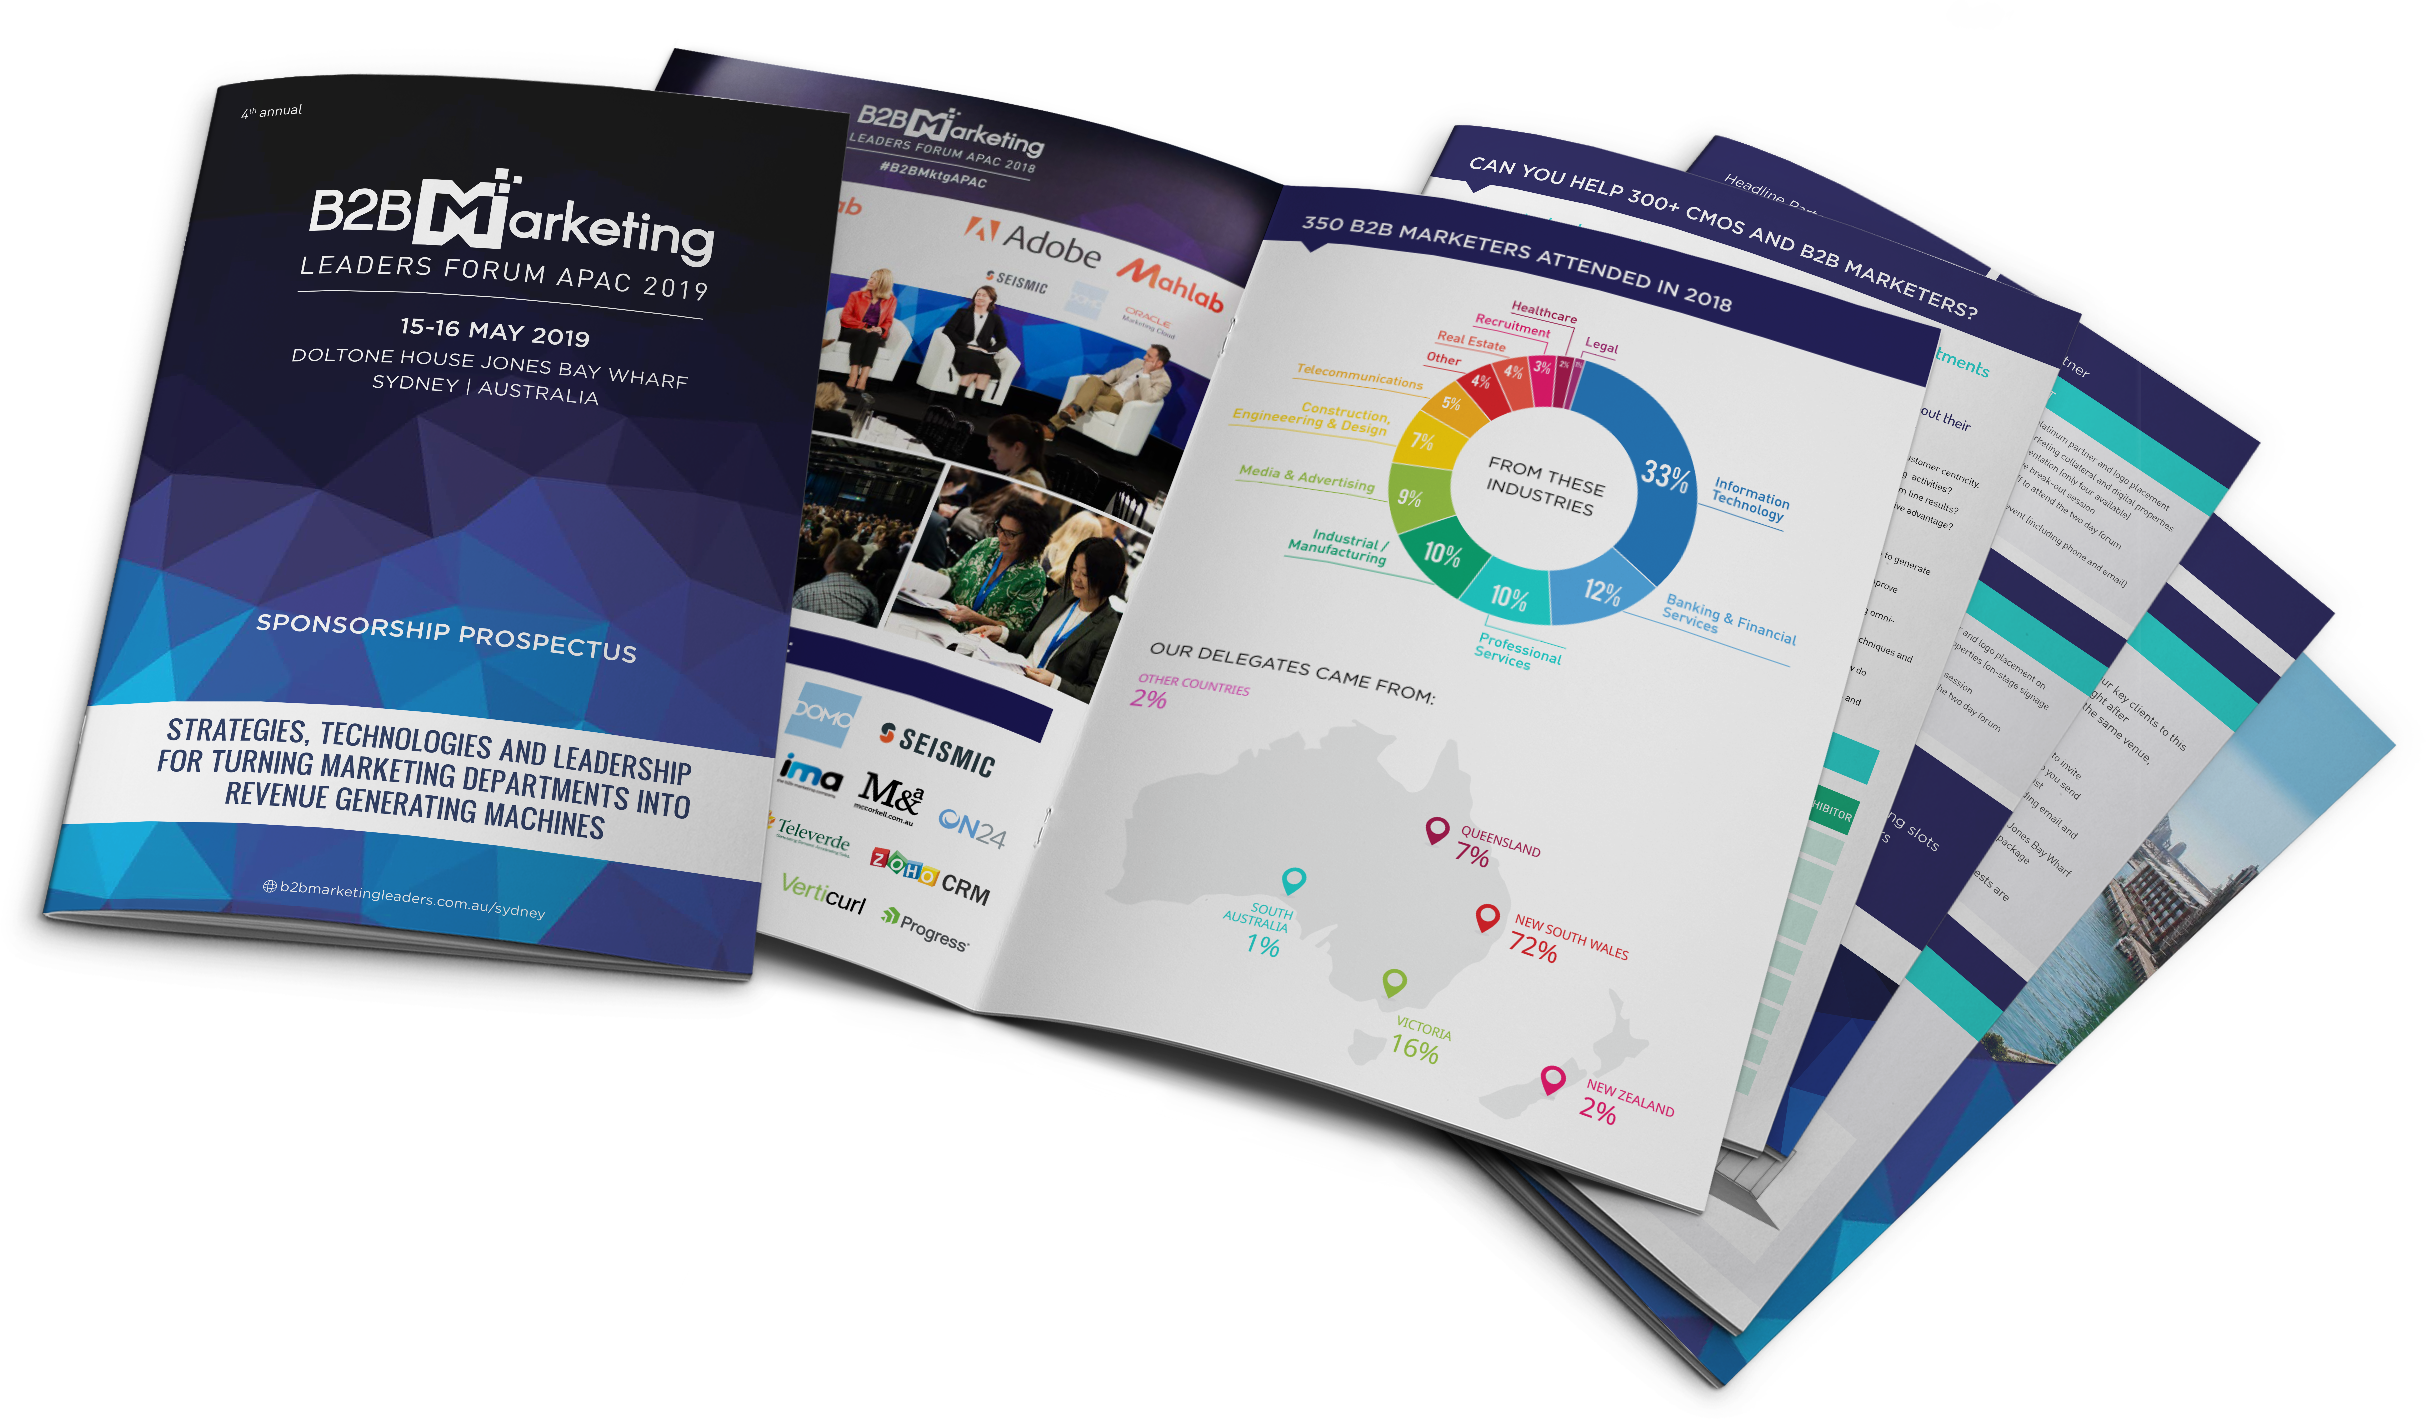 2019 B2B Marketing Conference in Sydney Australia for CMOs